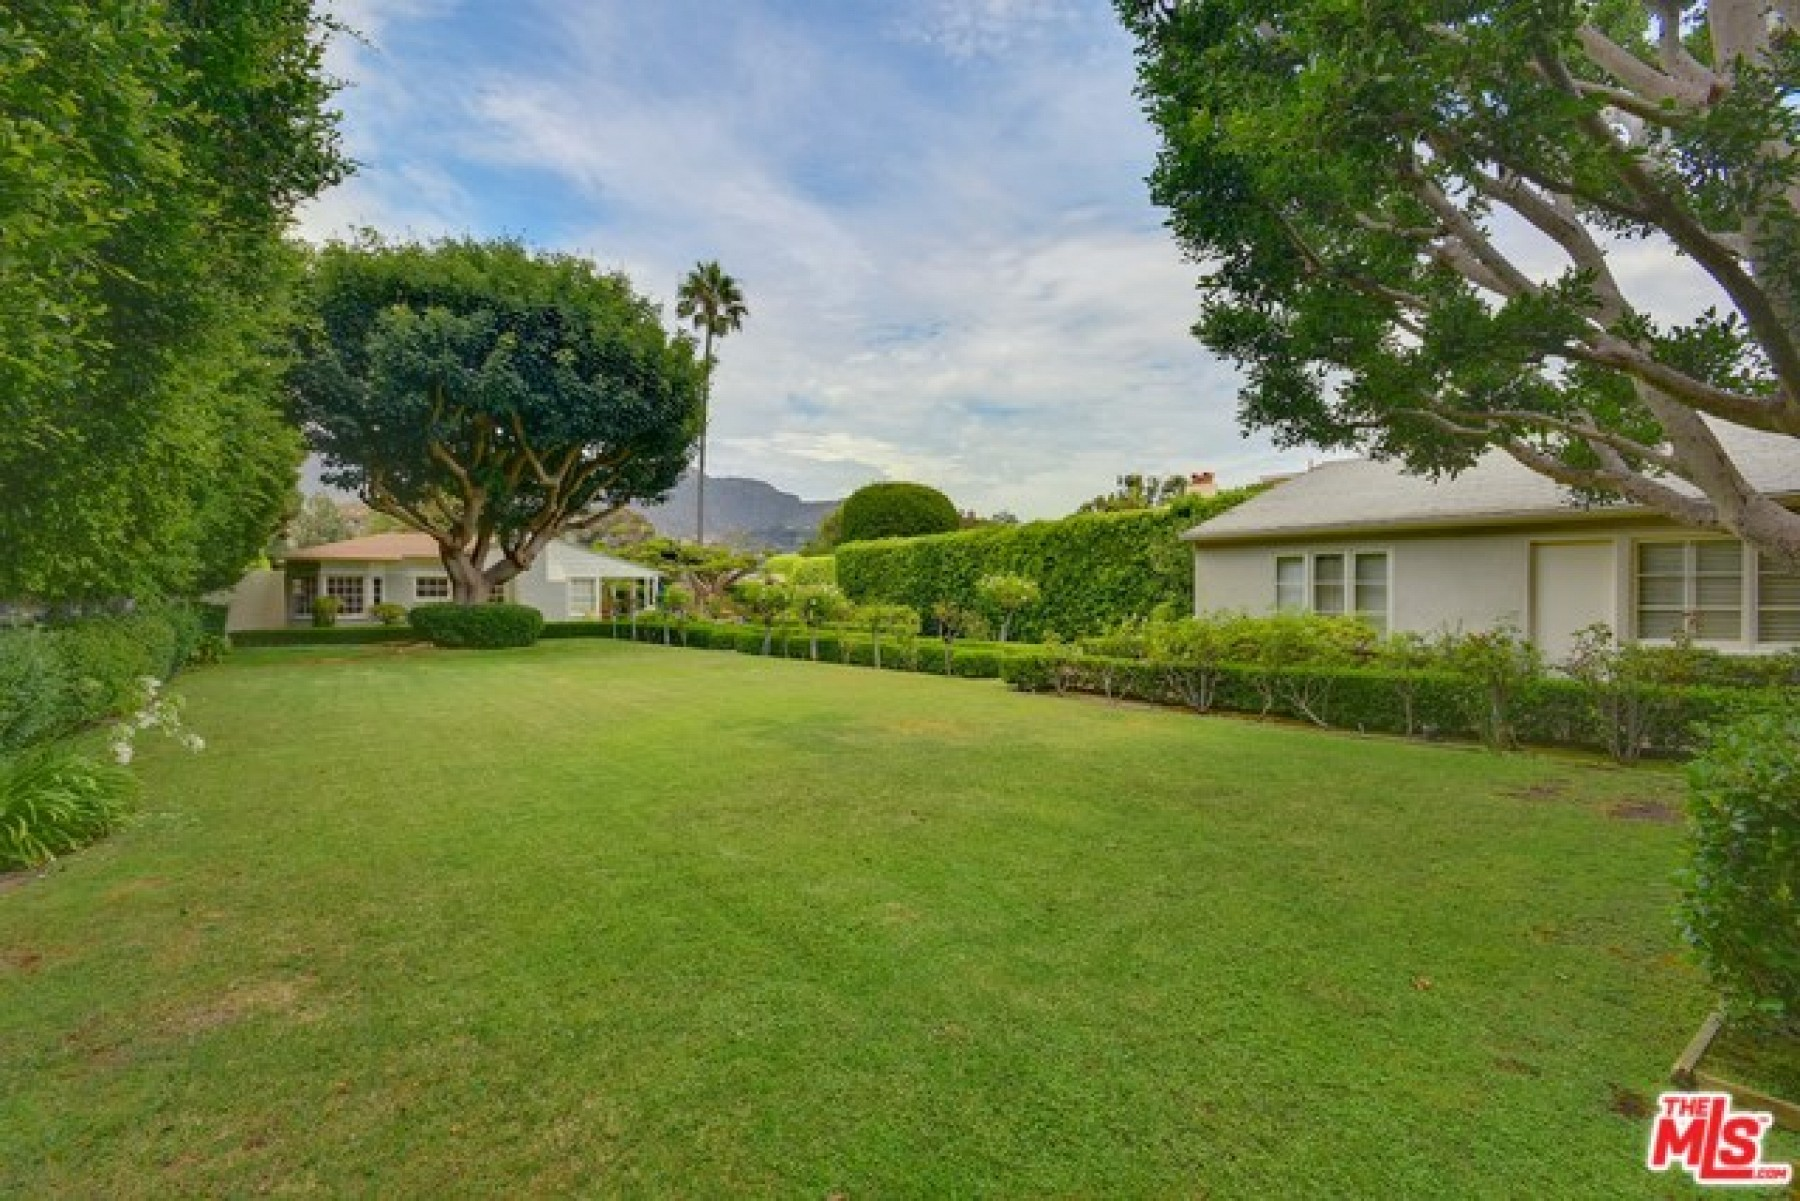 23555 MALIBU COLONY Road, Malibu, CA 90265